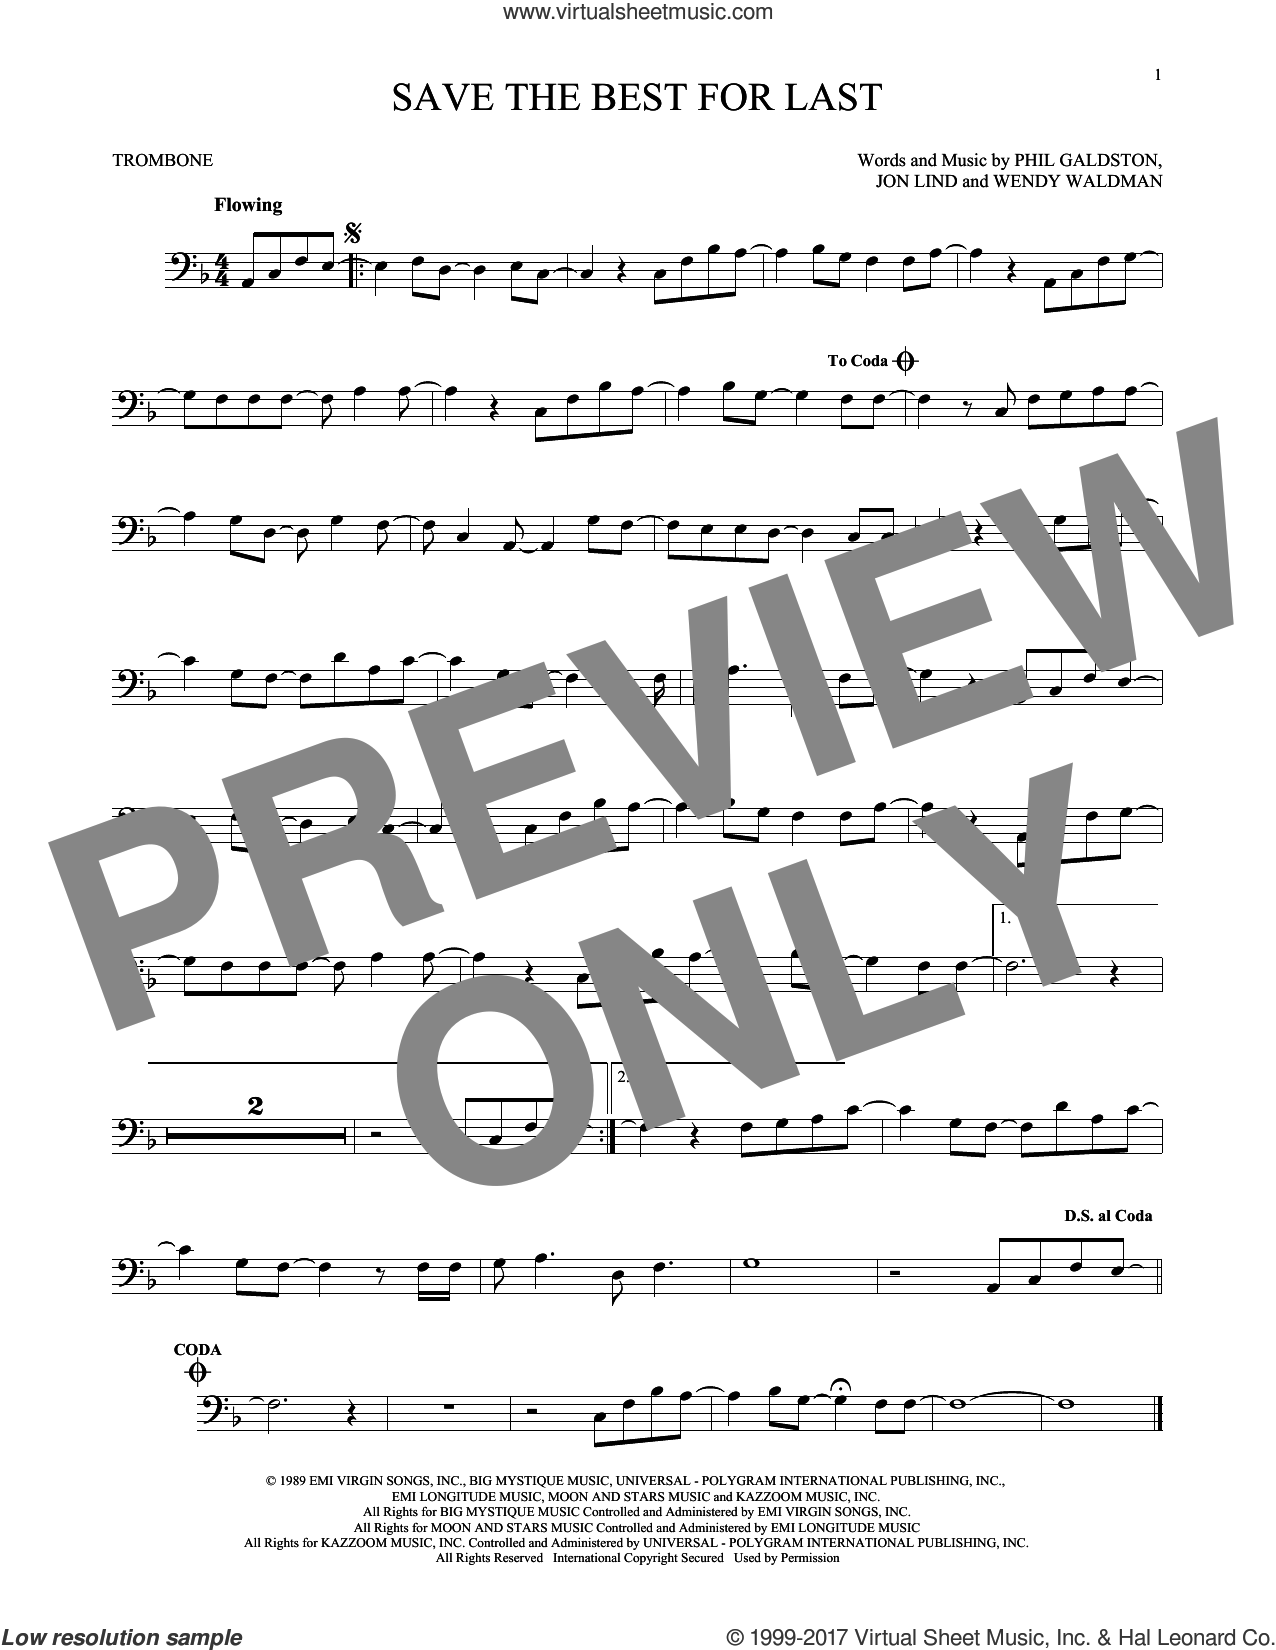 Save The Best For Last sheet music for trombone solo by Vanessa Williams, Jon Lind and Wendy Waldman, intermediate trombone. Score Image Preview.